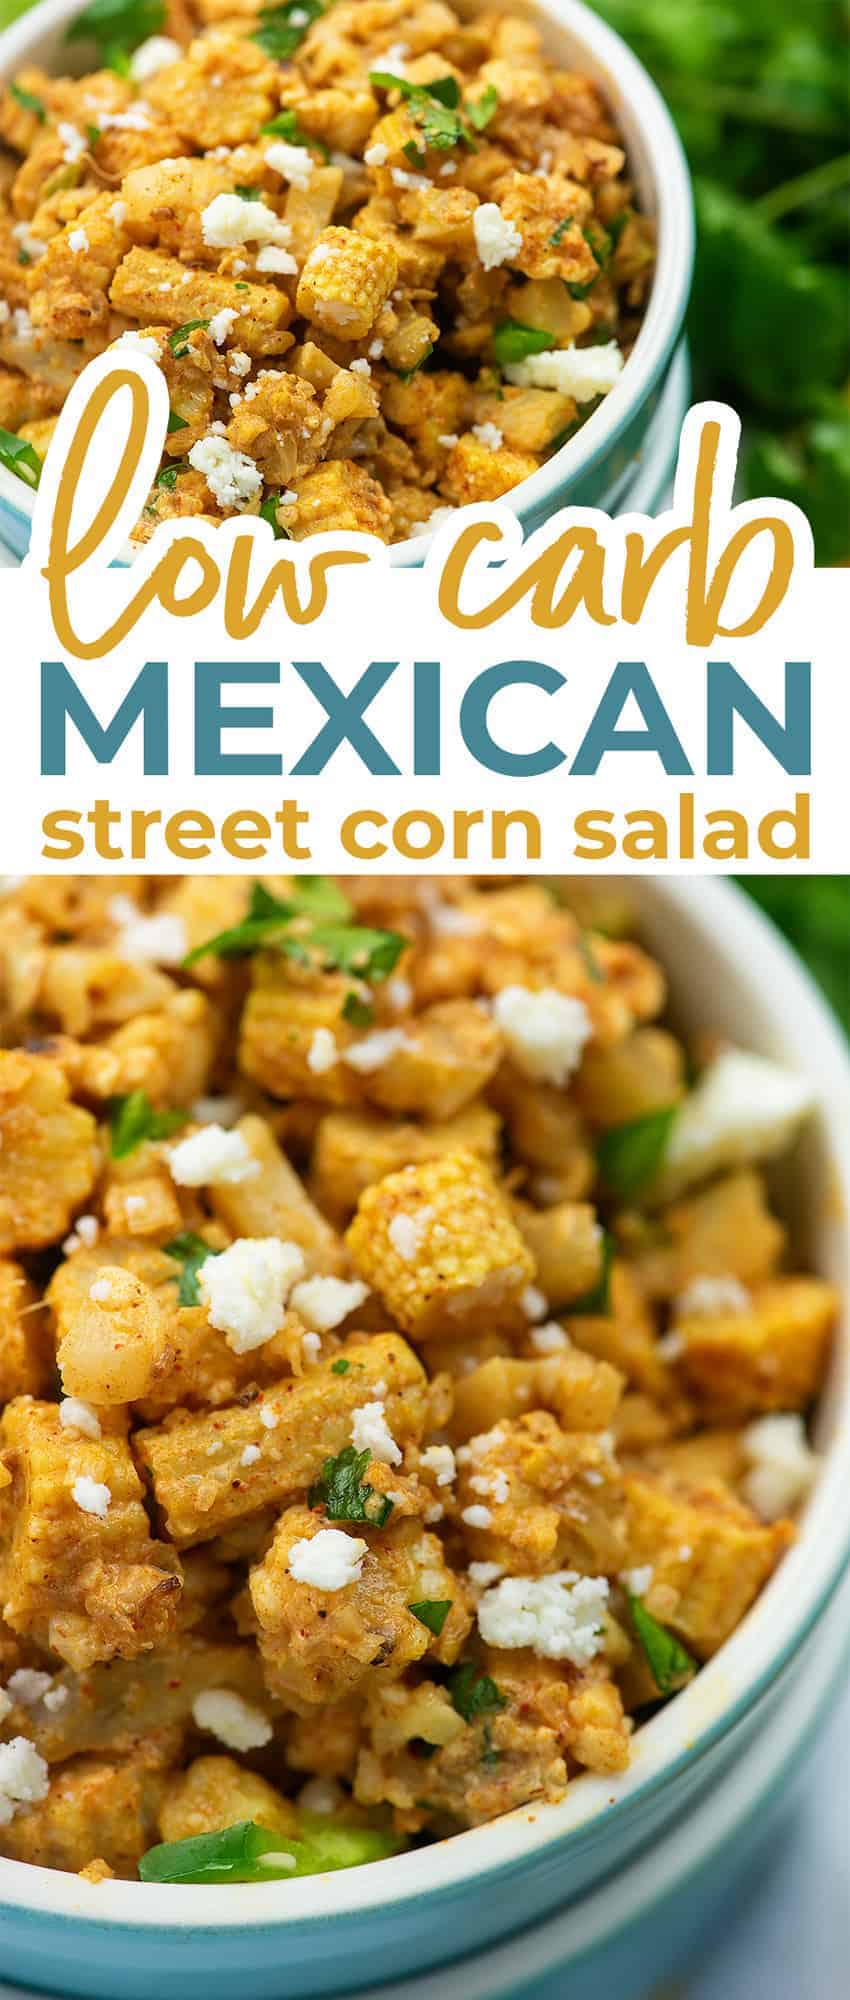 low carb Mexican street corn salad photo collage